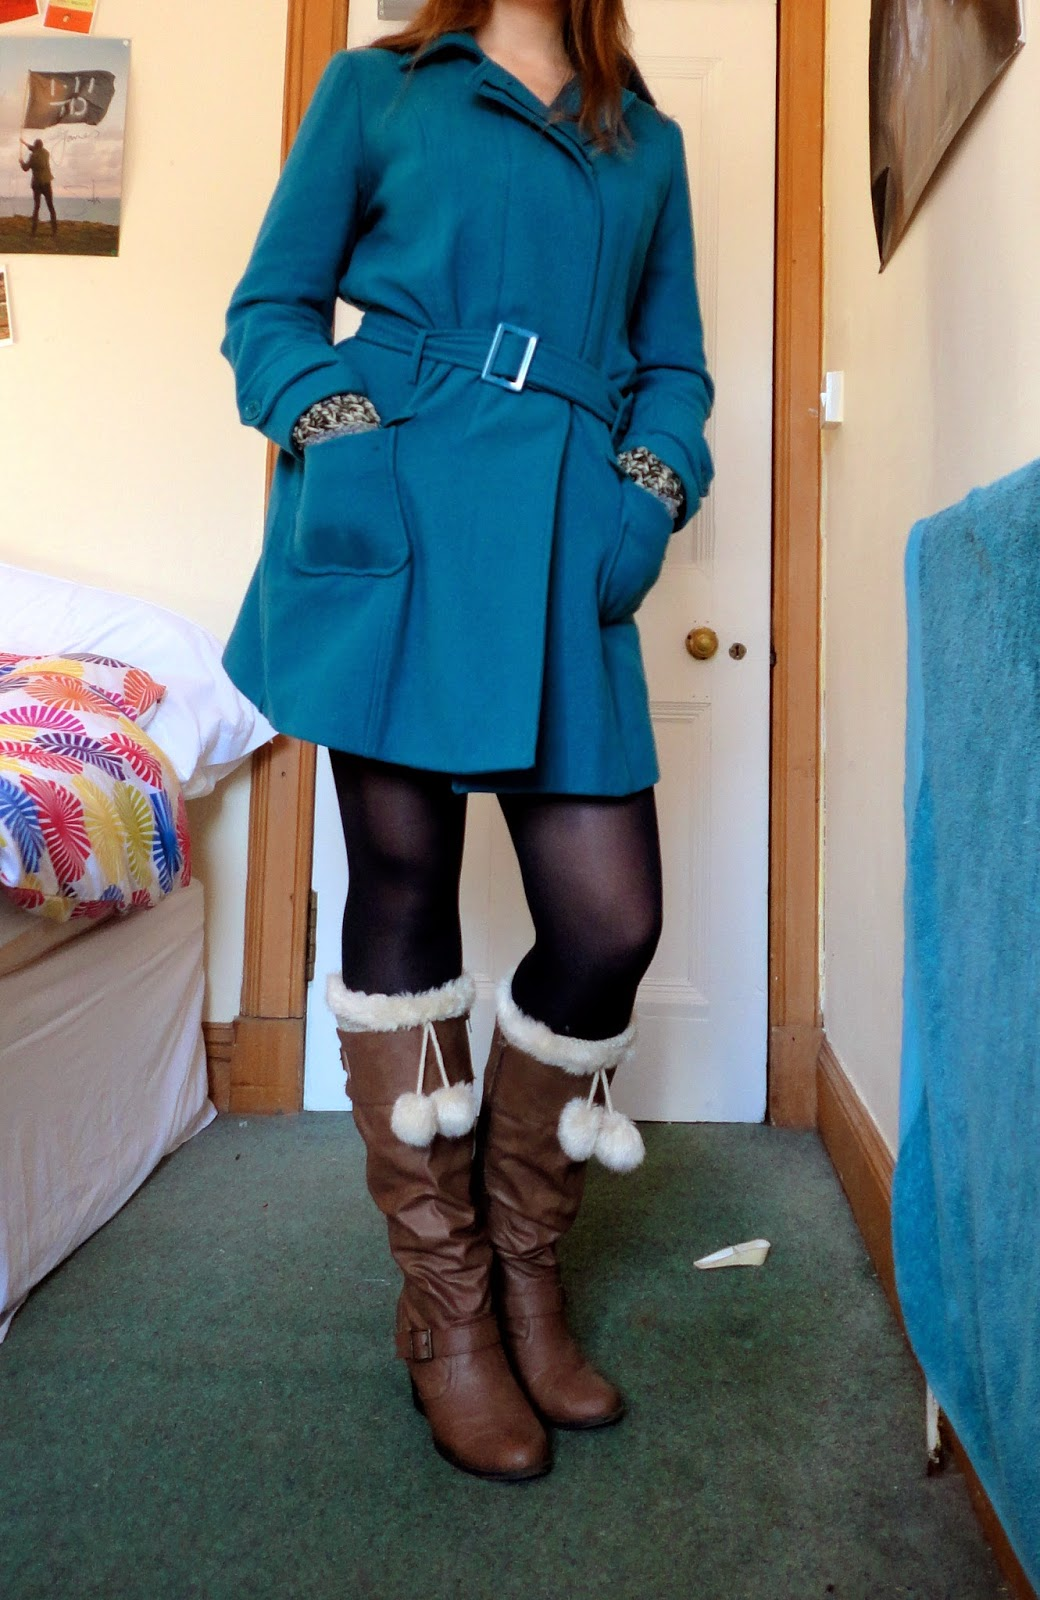 outdoor winter outfit of turquoise blue coat and brown leather boots with white fluffy toppers